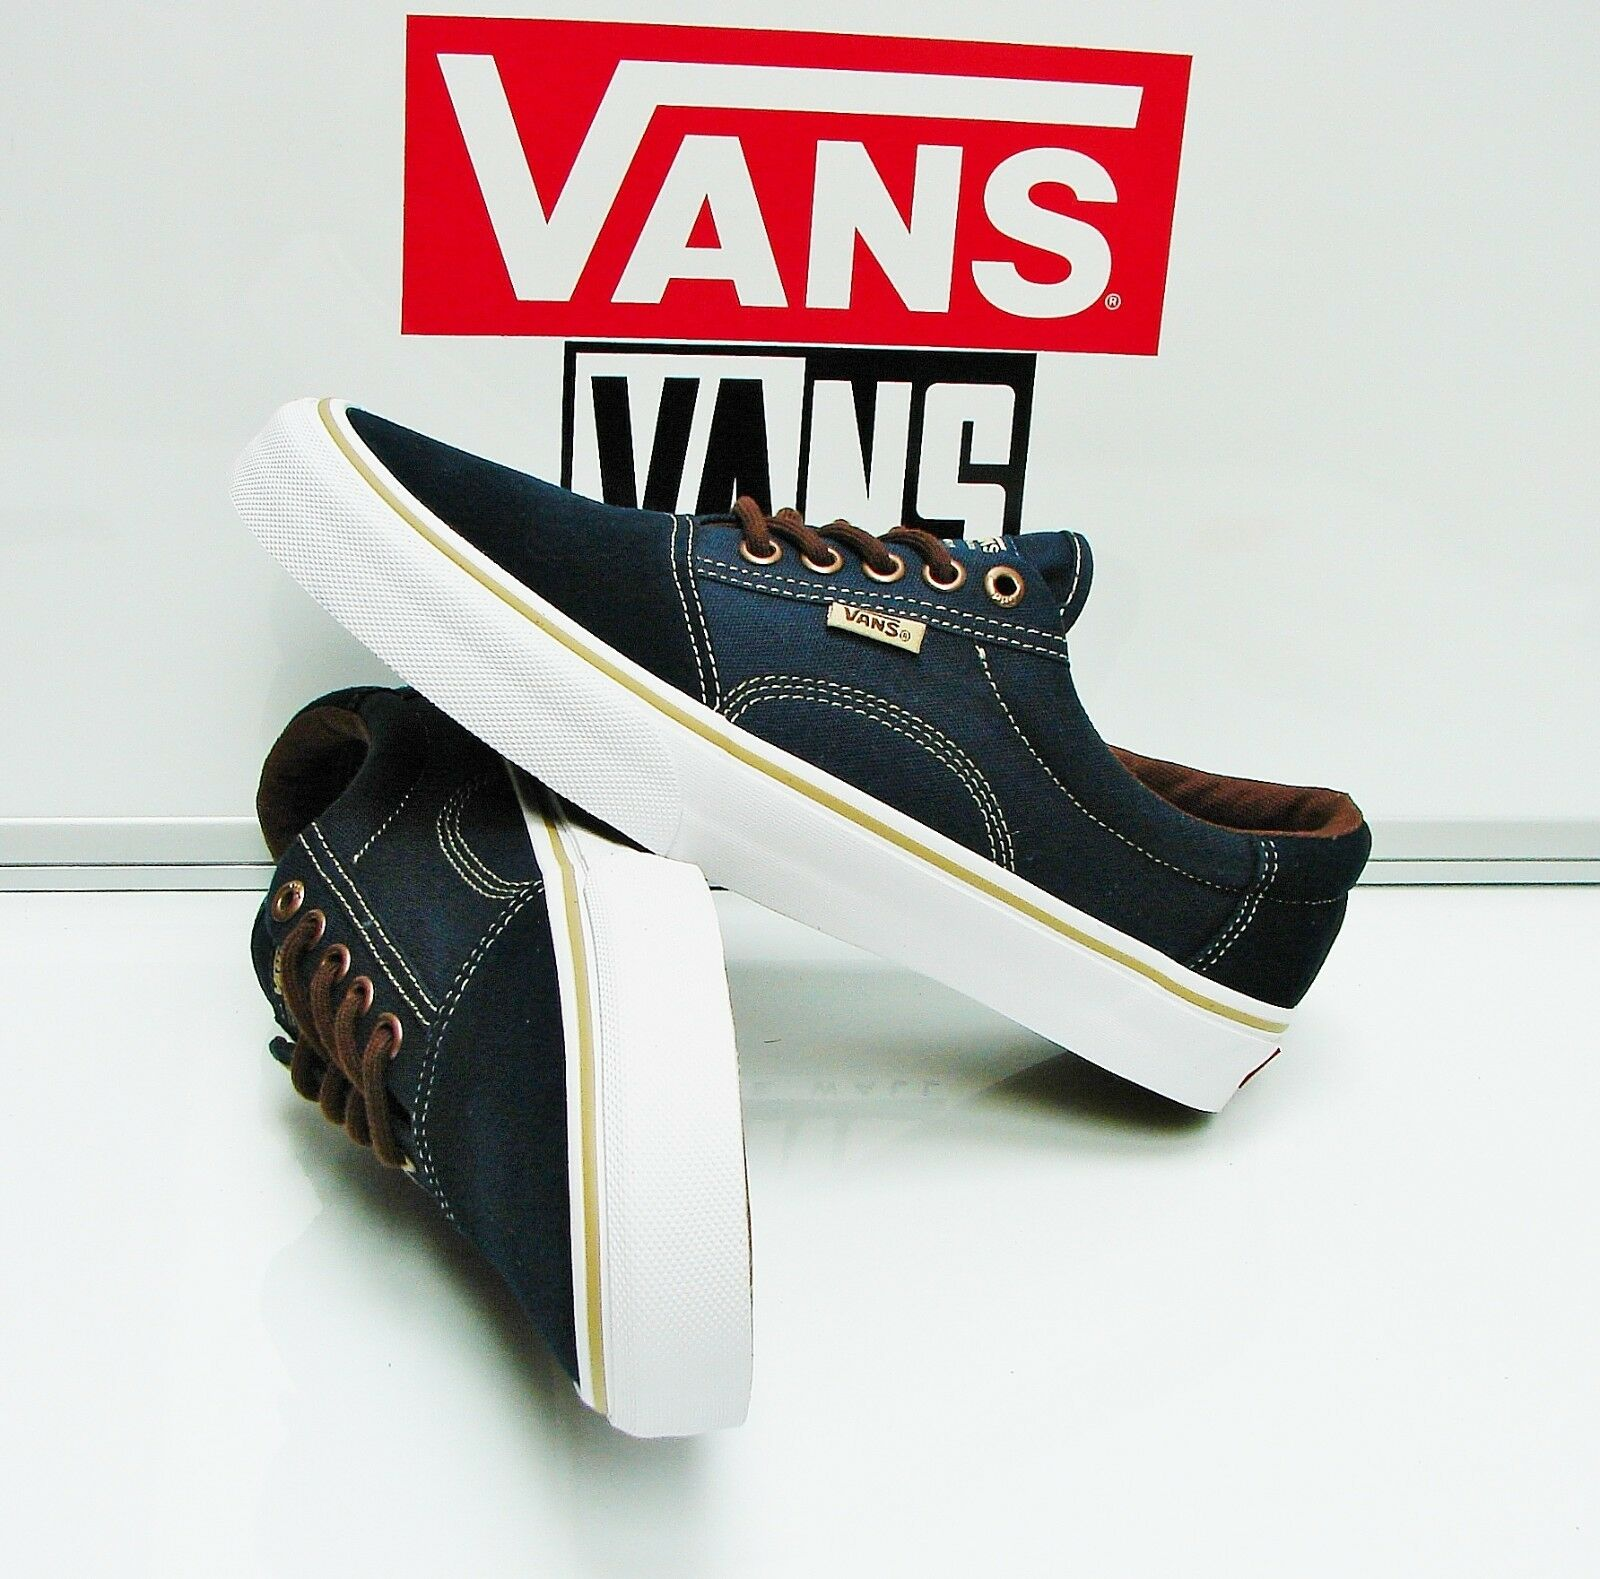 Vans Rowley Solos Dress Size: Blues Brown VN00018KI53 Men's Size: Dress 8.5 6f34ff